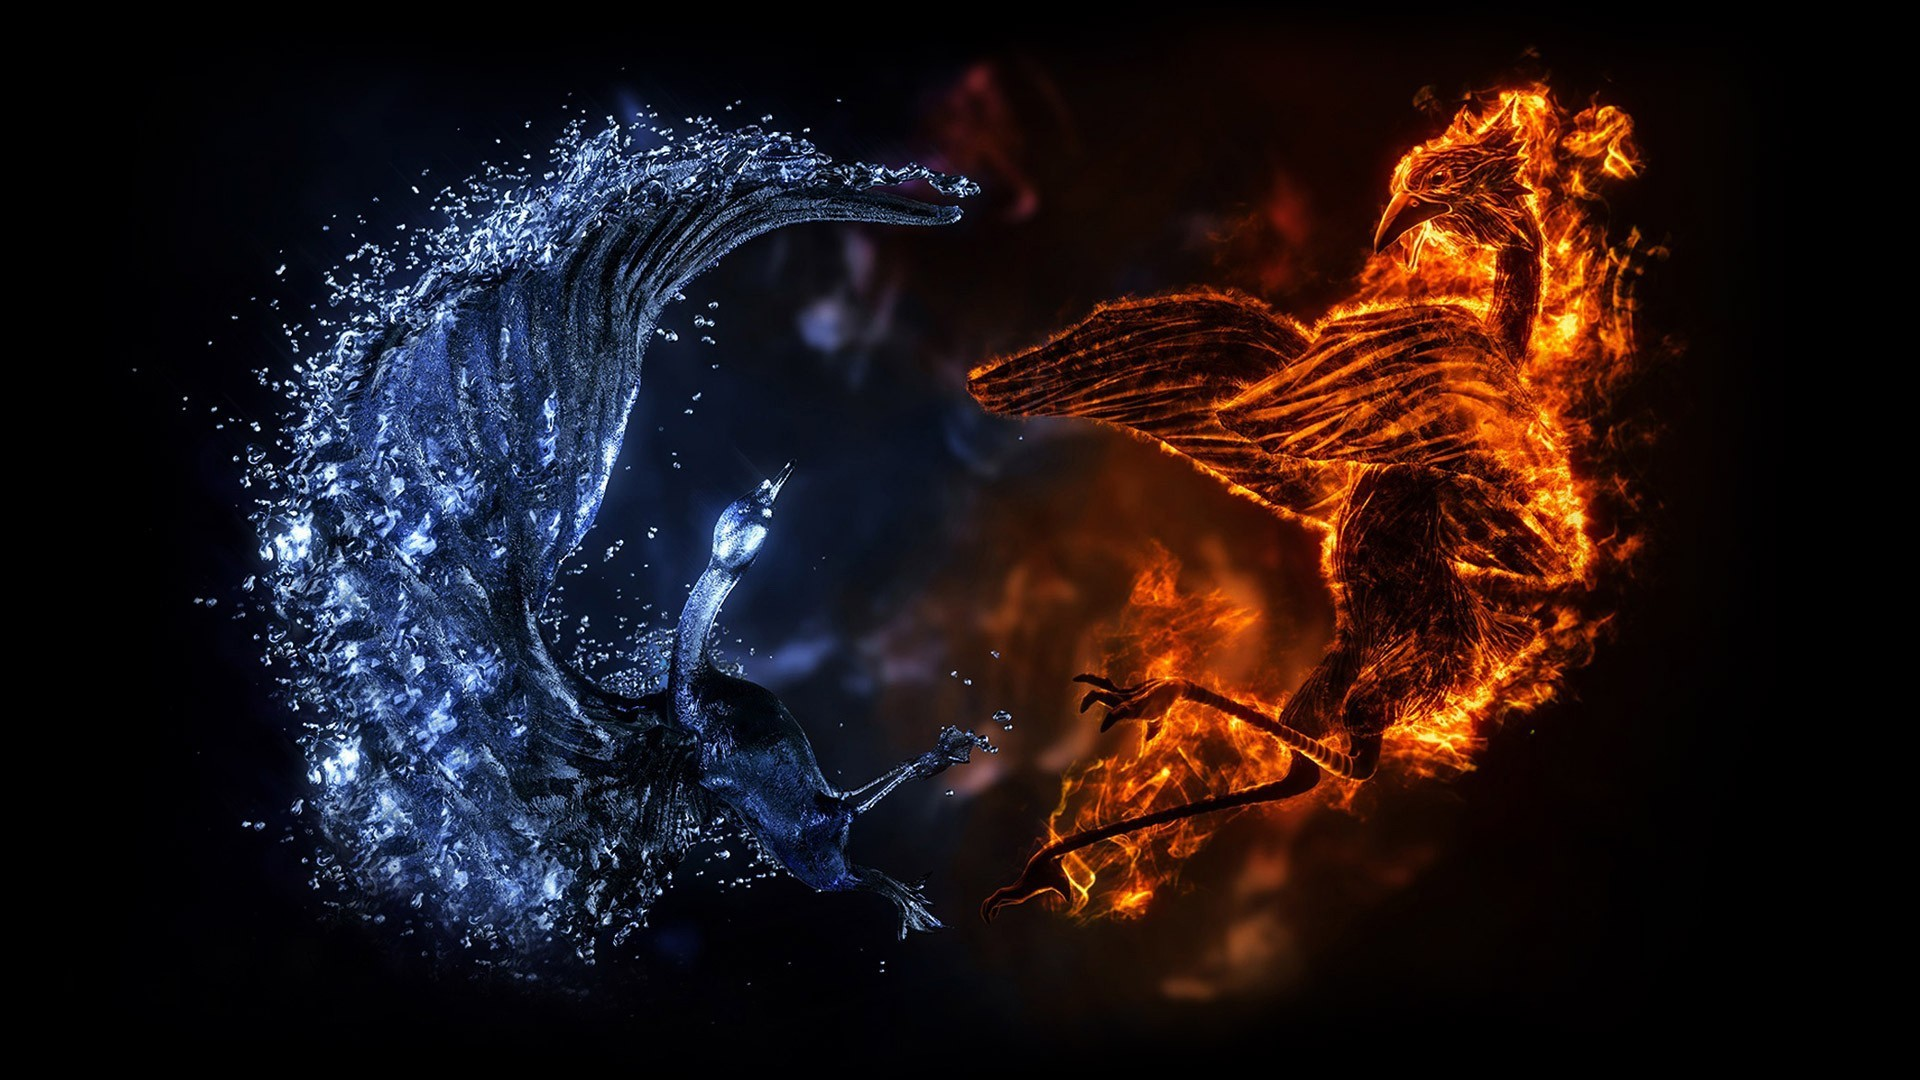 1920x1080 Battle of fire and water dragons wallpapers and images .